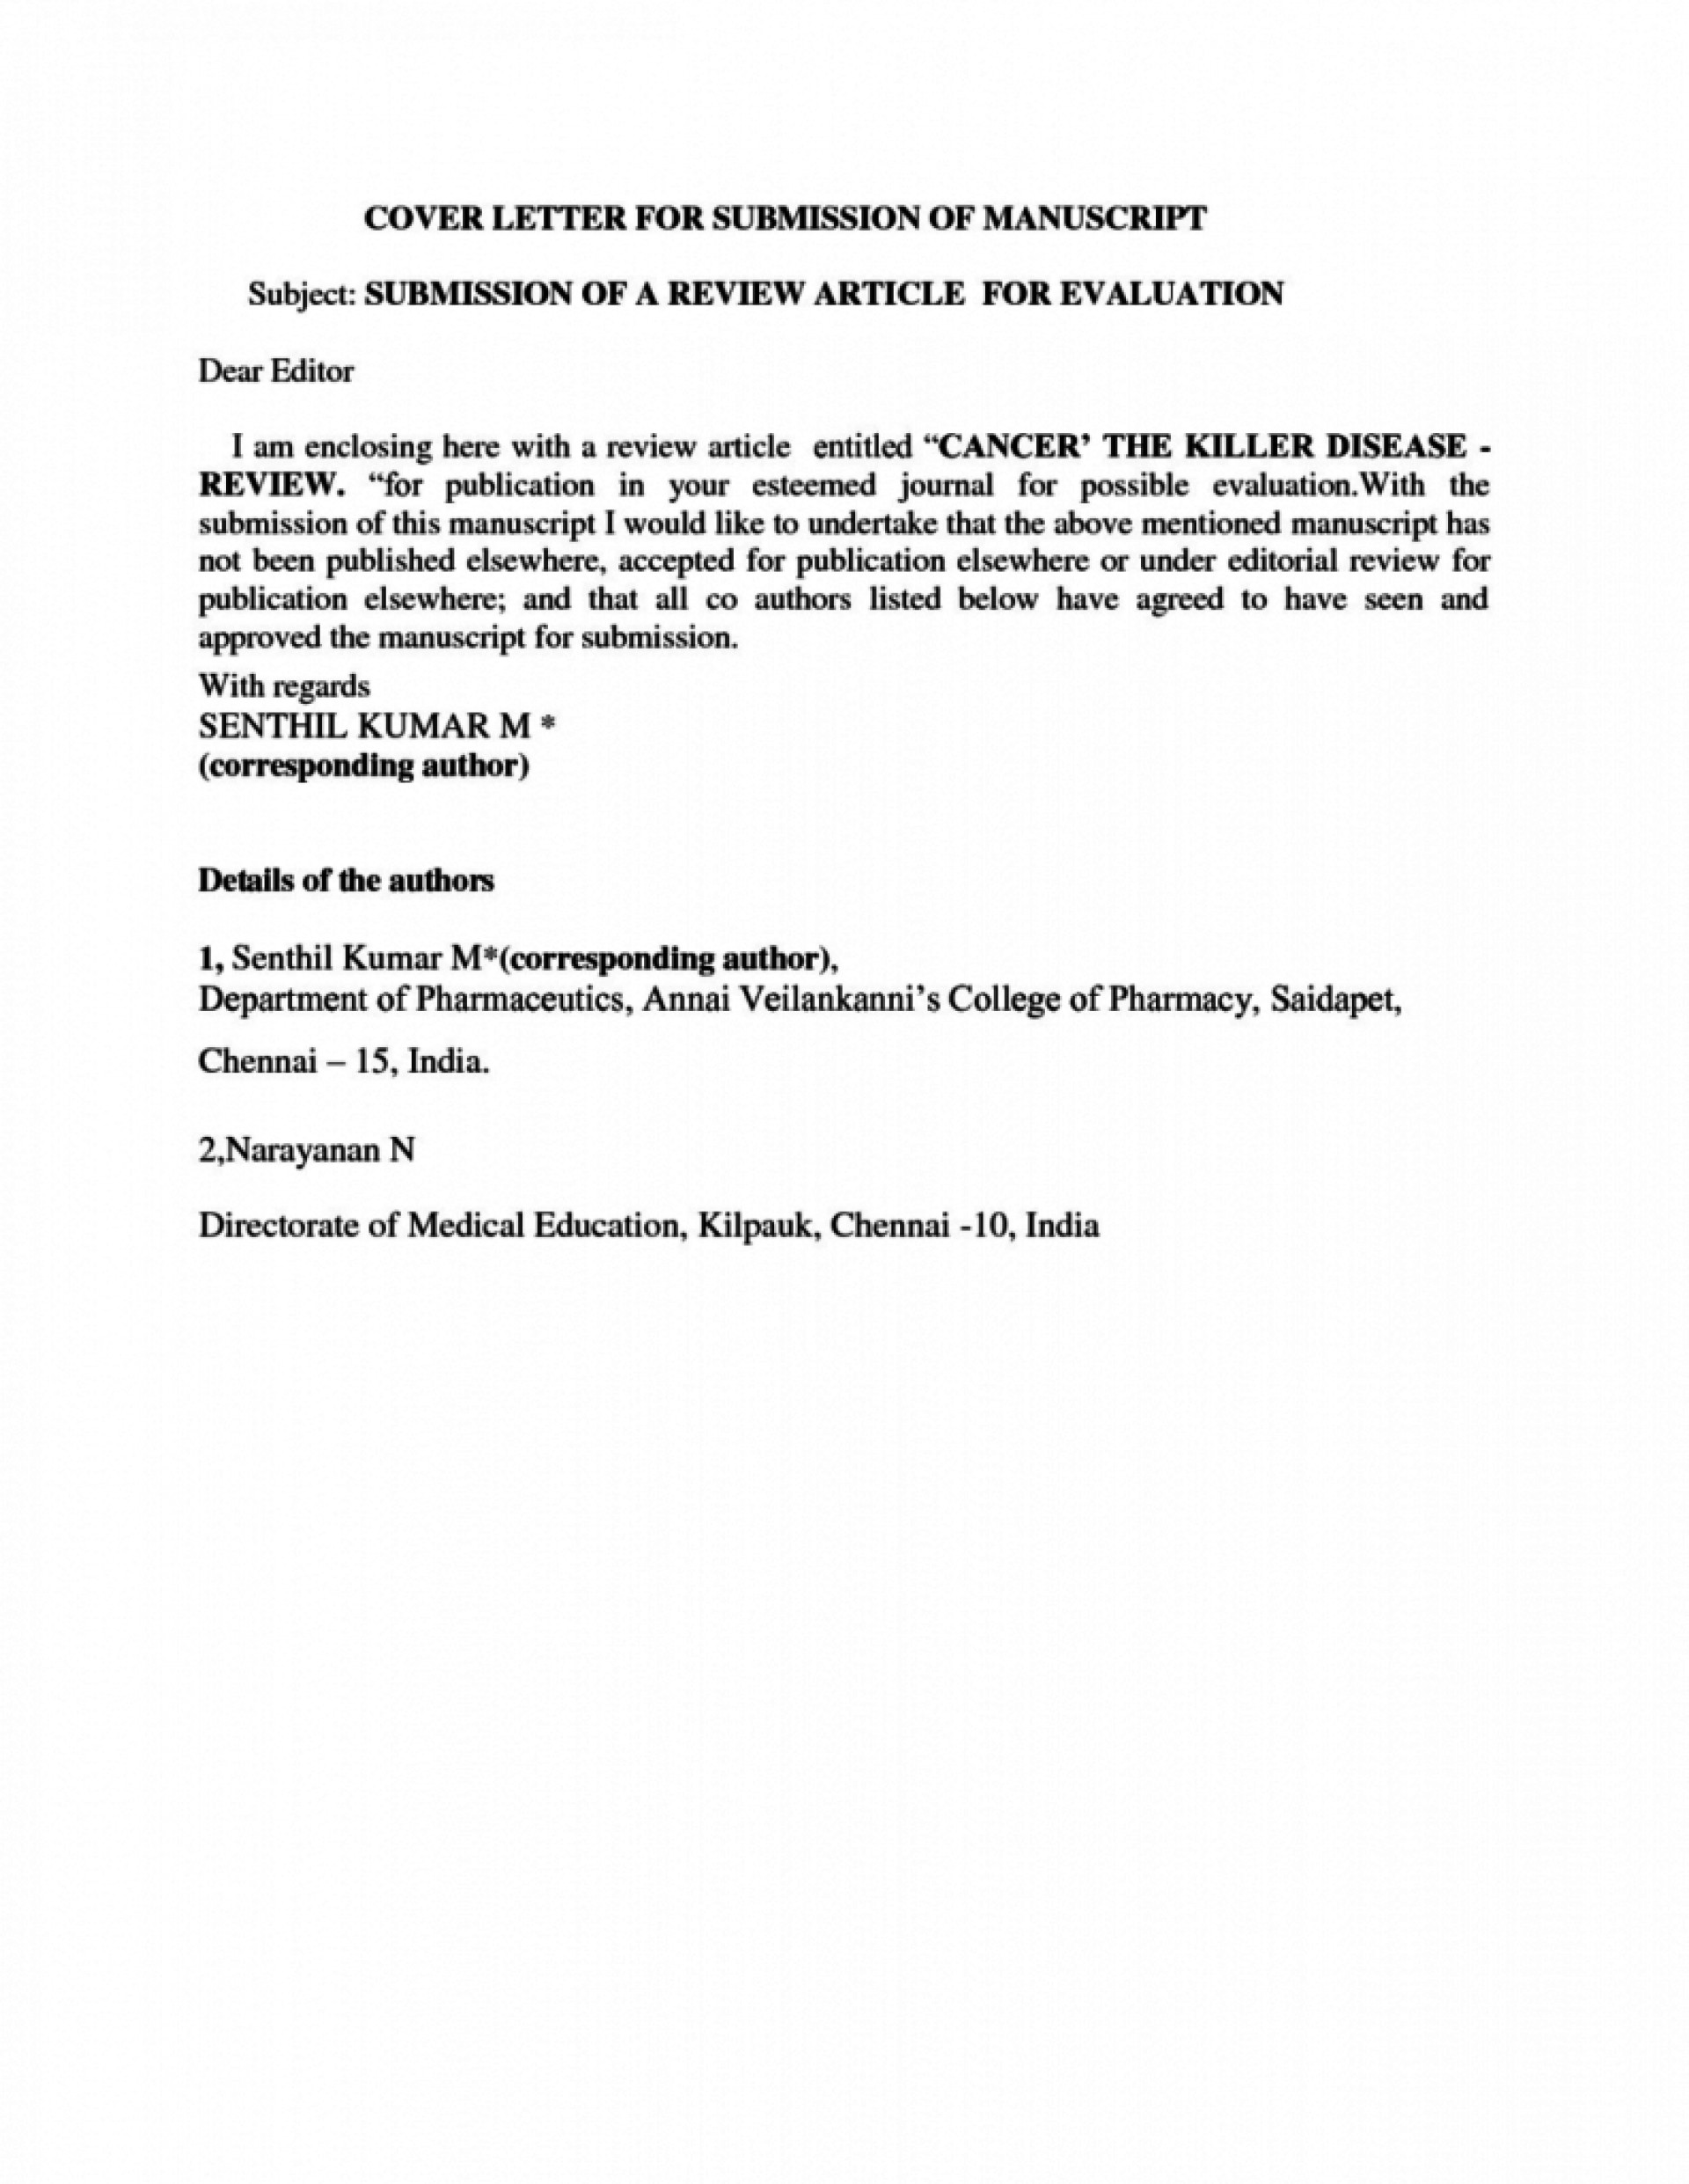 012 Research Paper Cover Letter For Journal Submission Example Publication Singular Article Model Of 1920